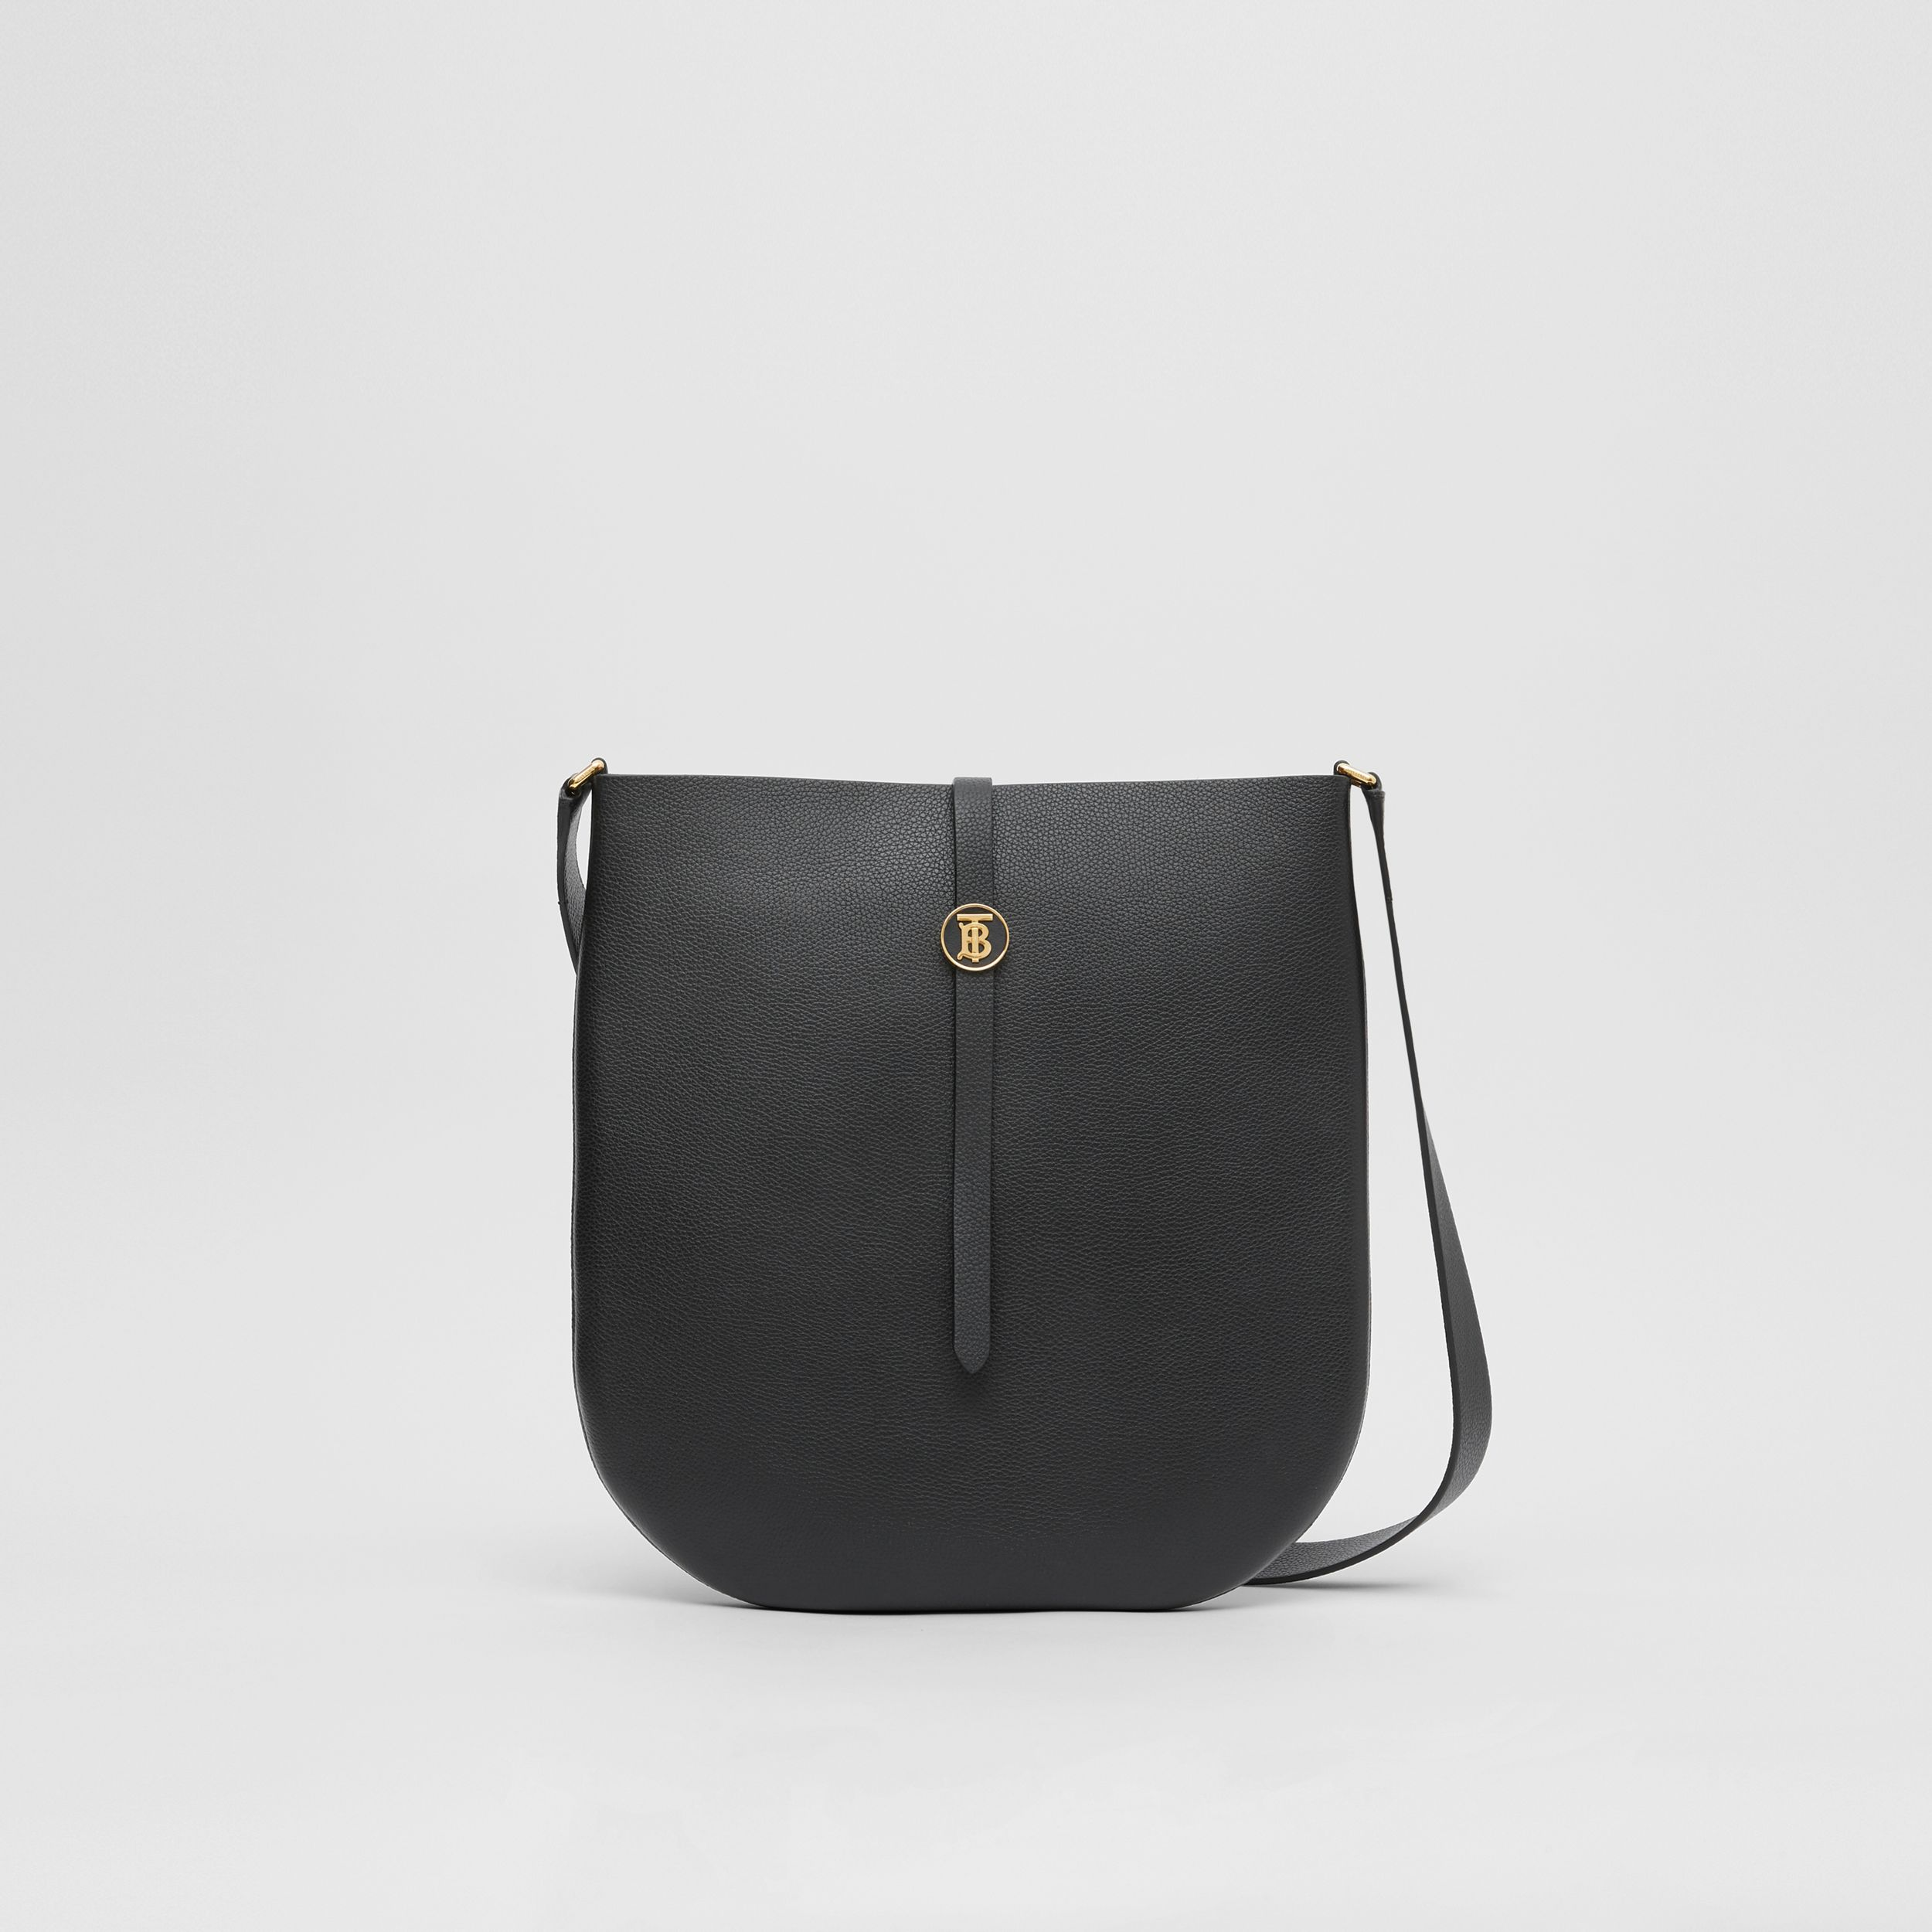 Grainy Leather Anne Bag in Black - Women | Burberry United Kingdom - 1